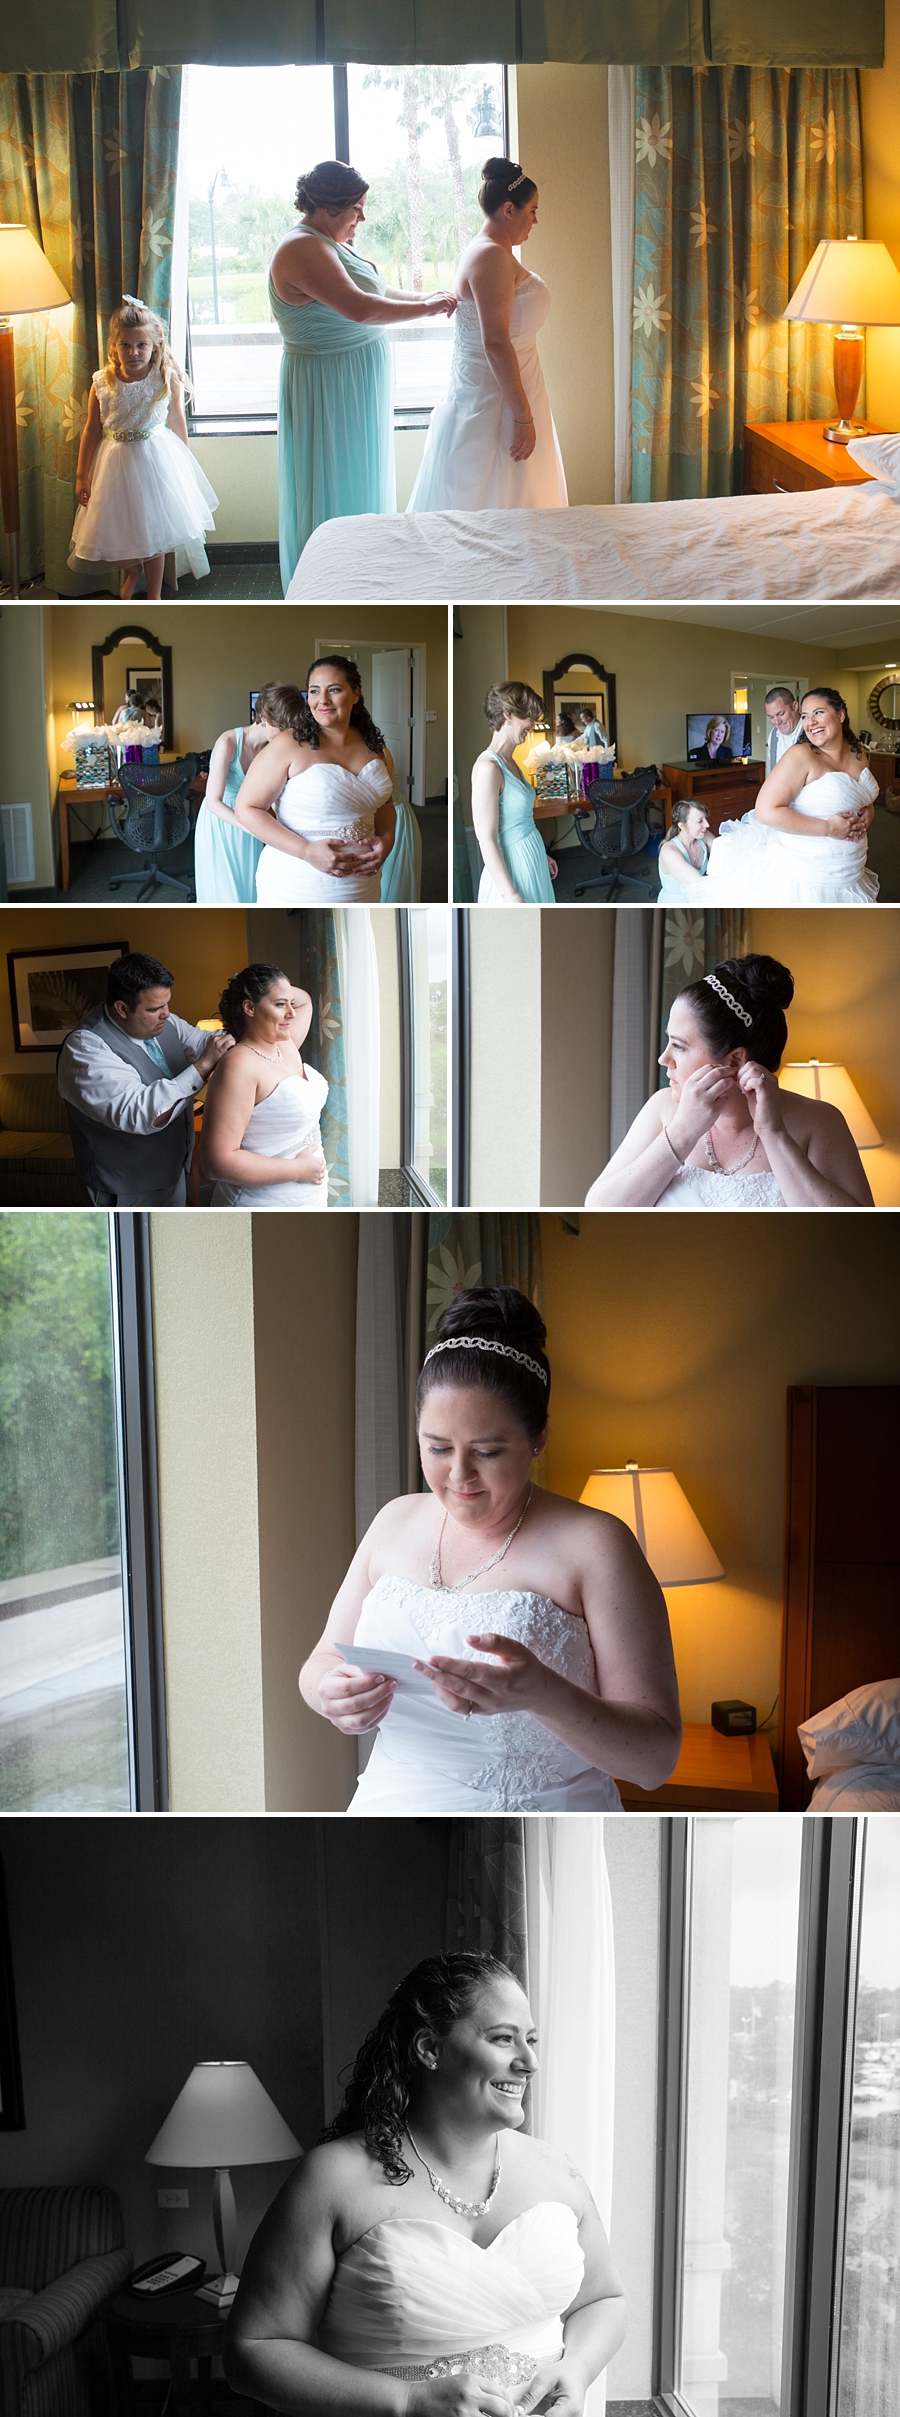 brides getting ready